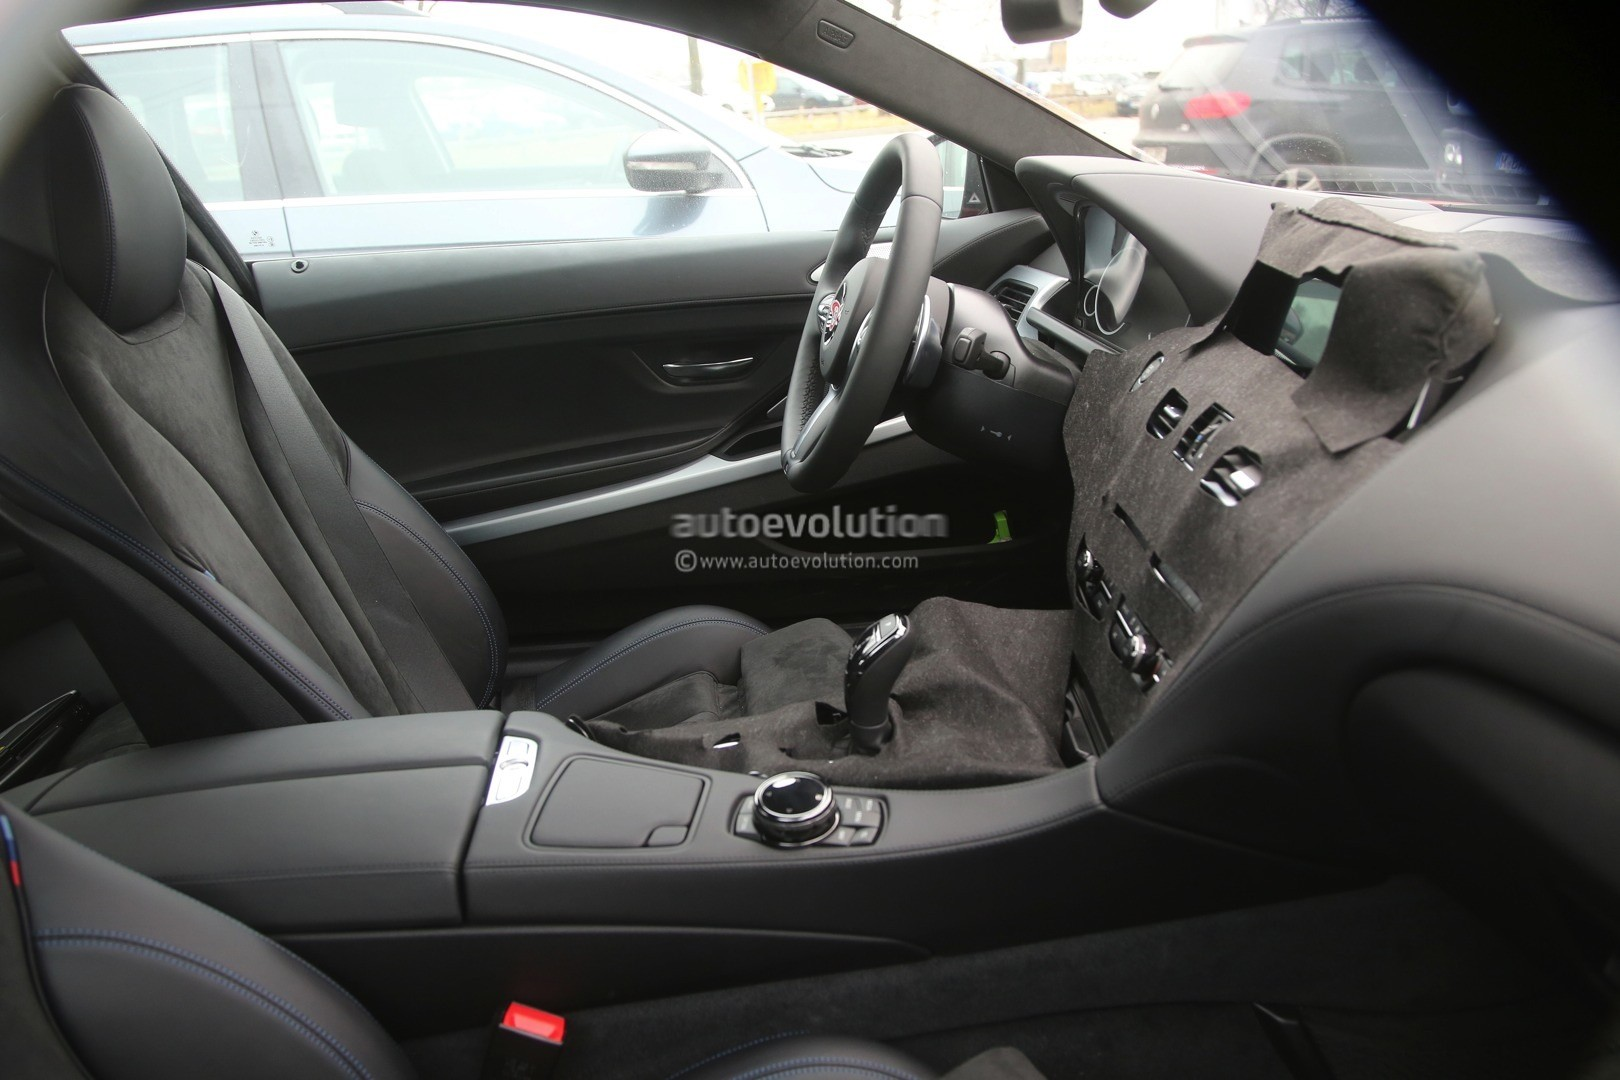 2016 bmw 6 series facelift interior spied for the first time   autoevolution